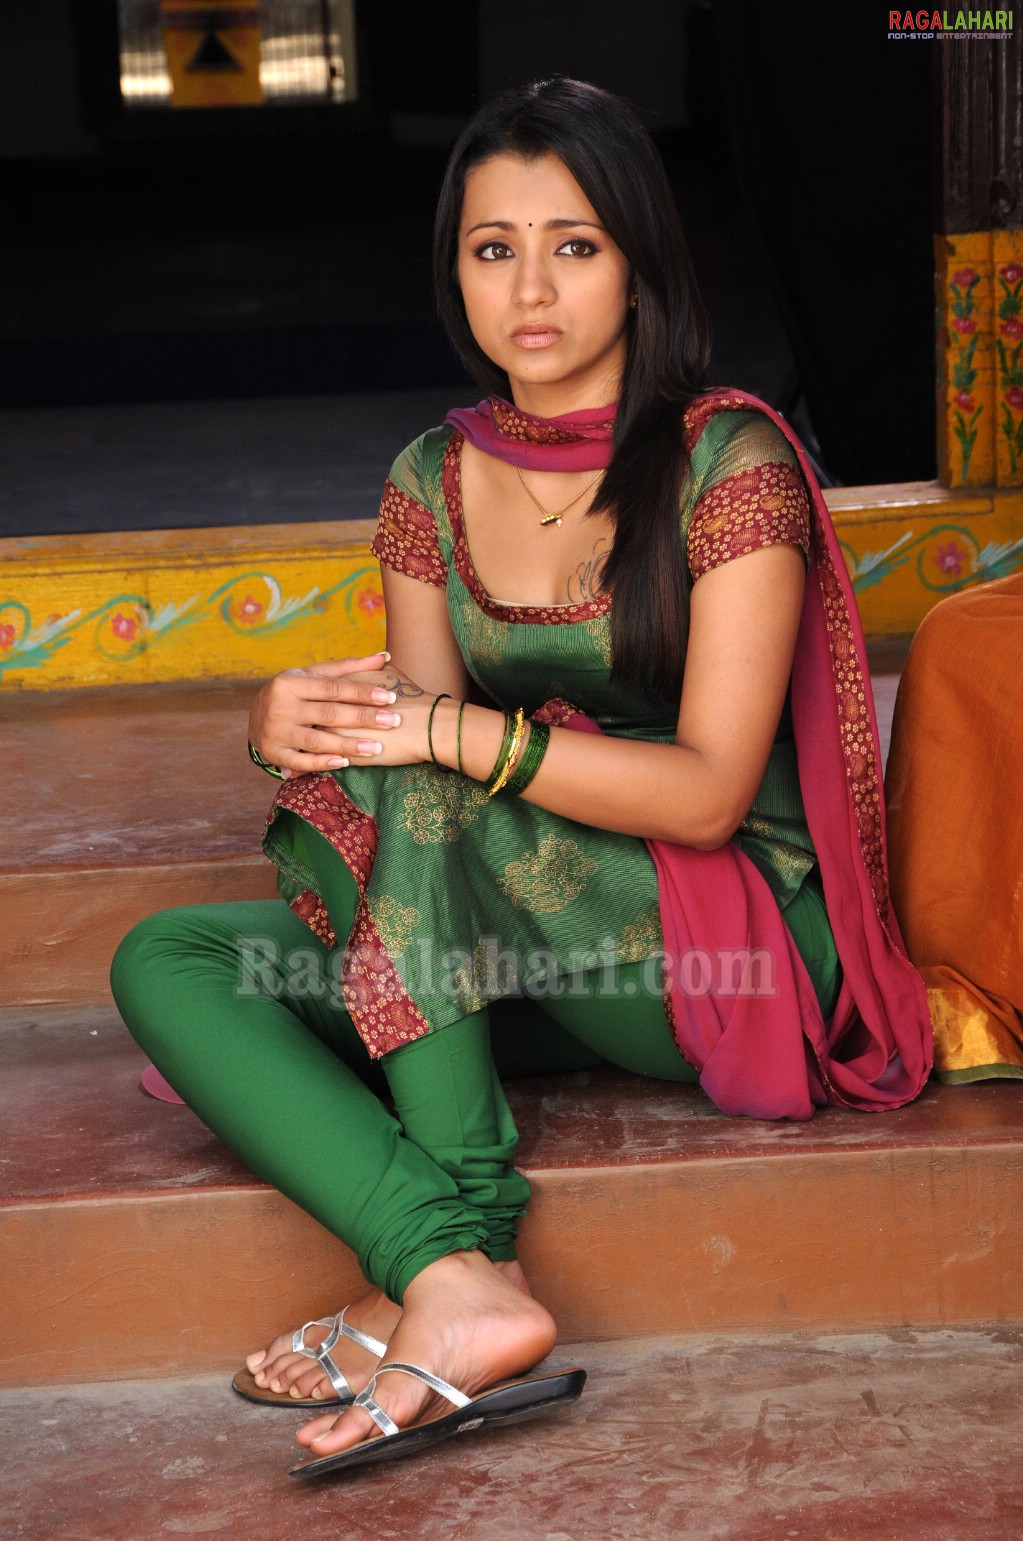 Indian Feet Pictures Images Photos Photobucket | Auto ...